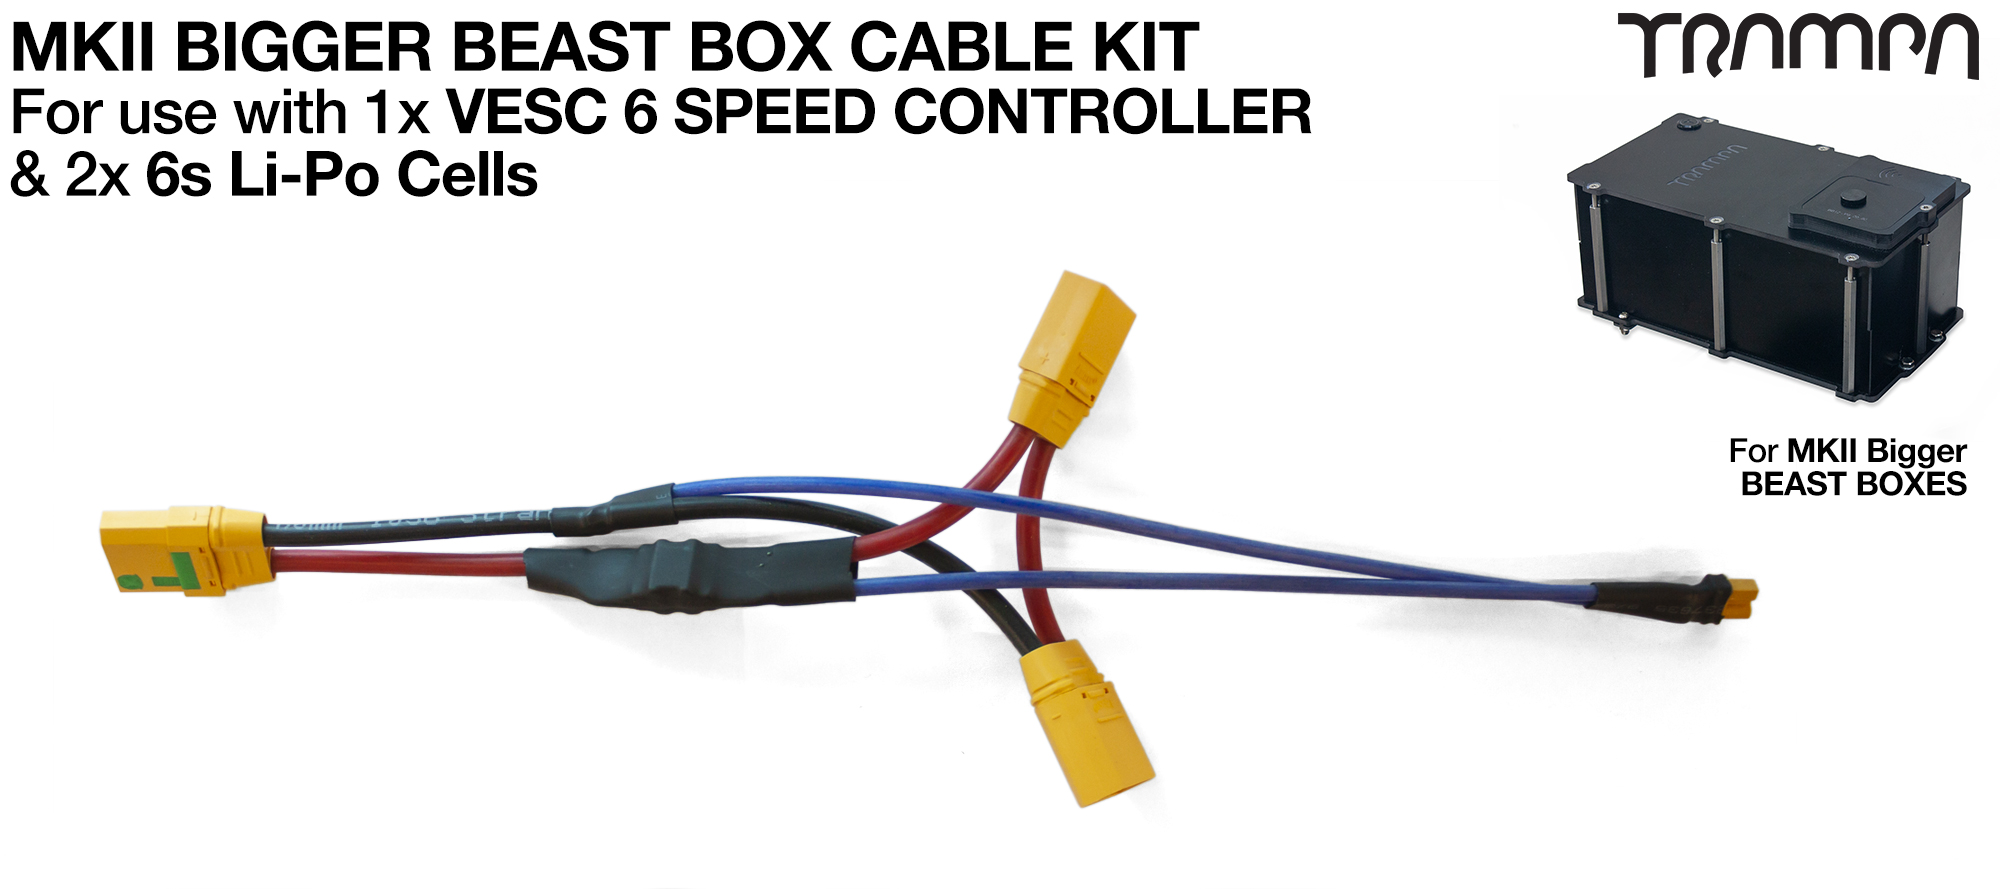 MKII Bigger BEAST BOX Cable Kit - used when fitting 1x VESC 6 MKV & 2x 6sLi-Po Cells